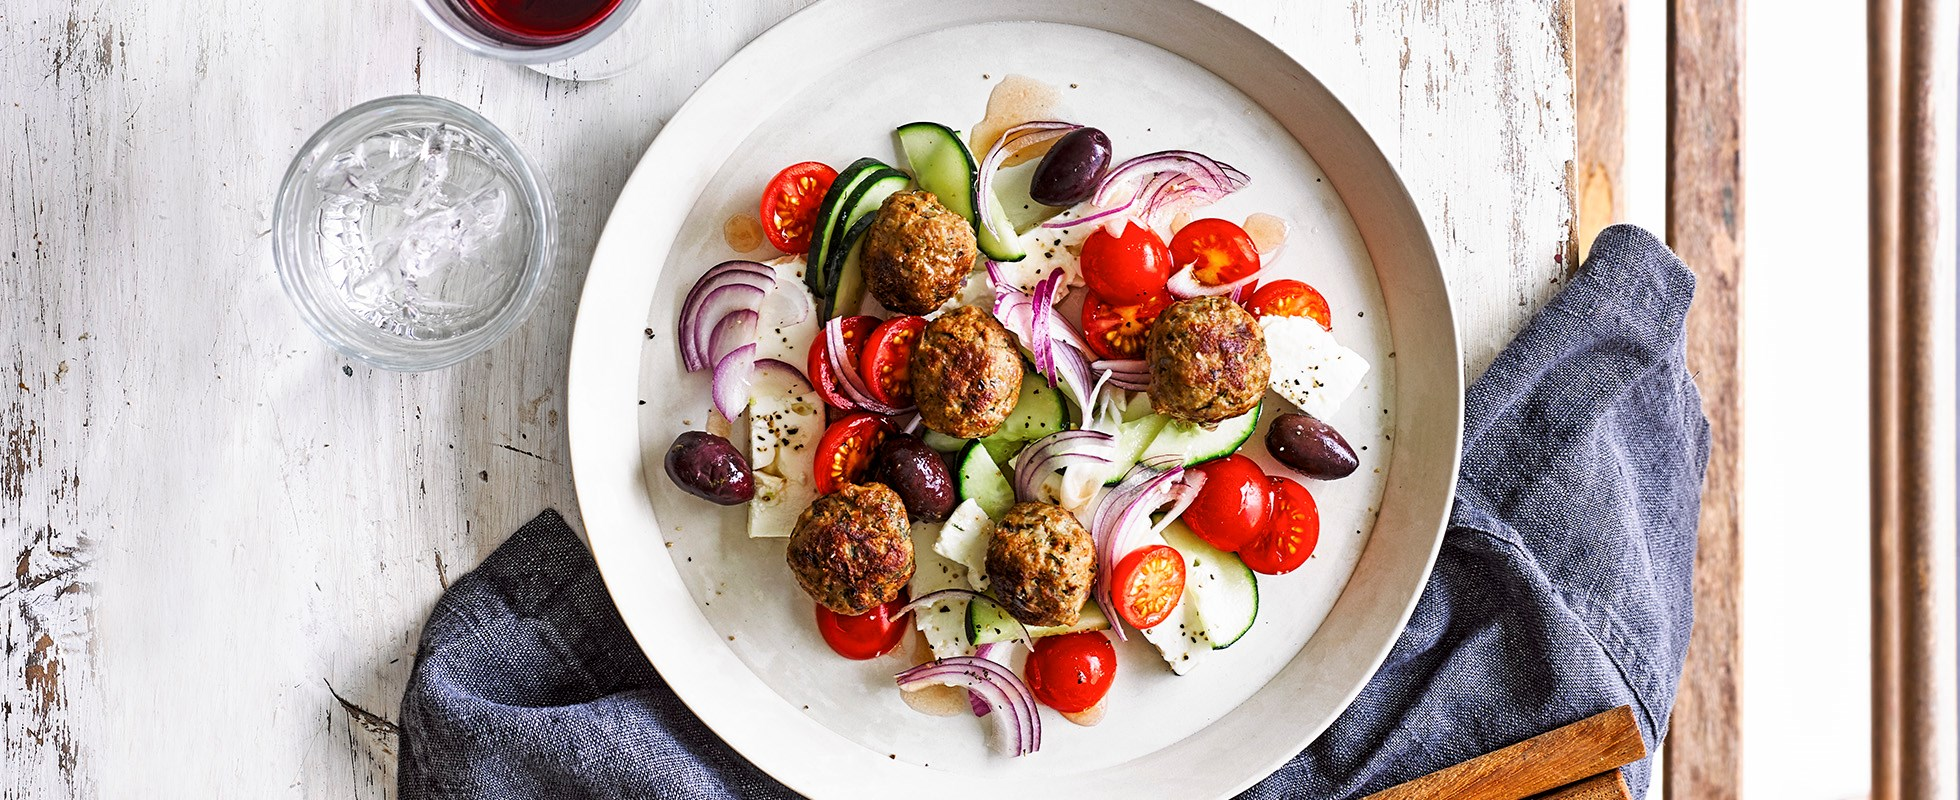 Lamb and dill meatballs with horitaki salad